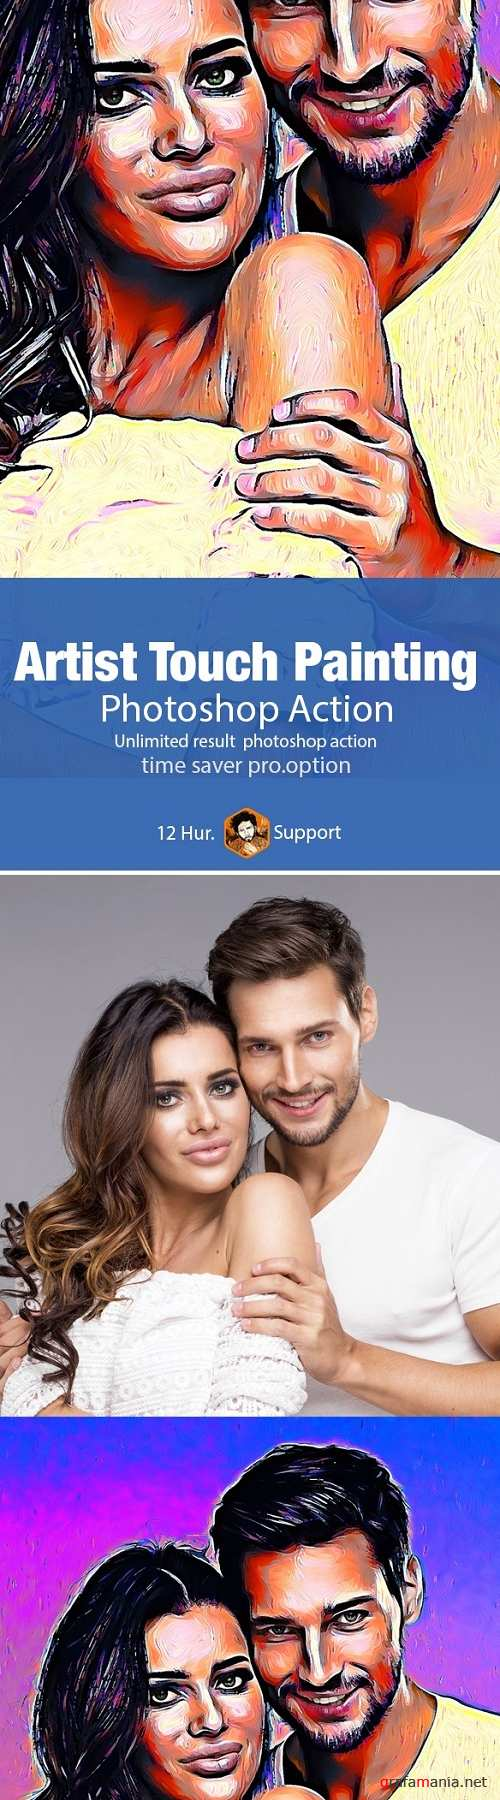 Artist Touch Painting - 19996566